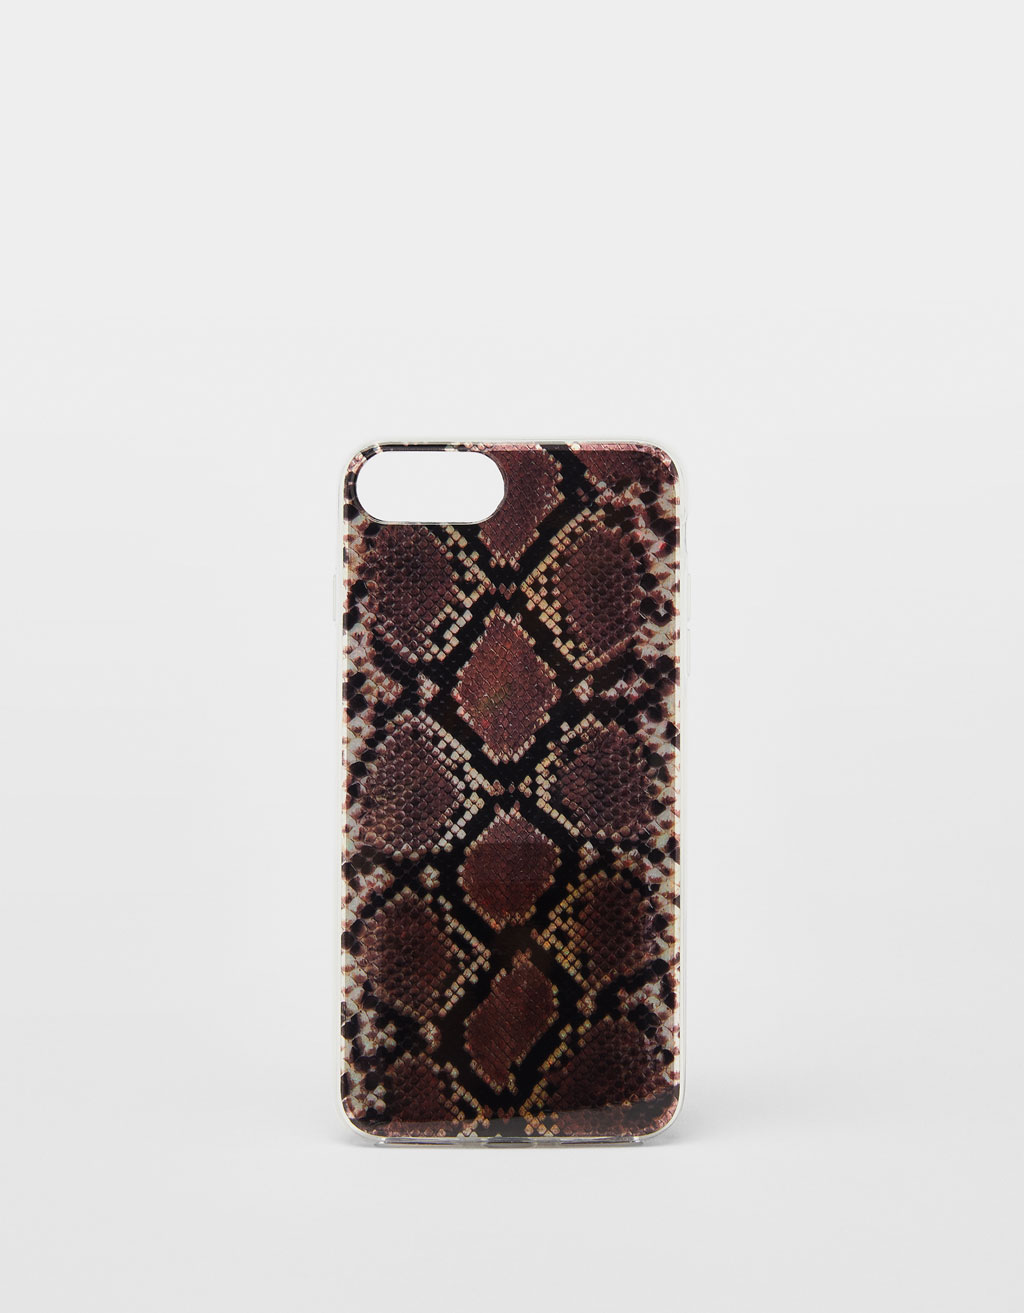 Snakeskin Print I Phone 6 Plus/7 Plus/8 Plus Case by Bershka